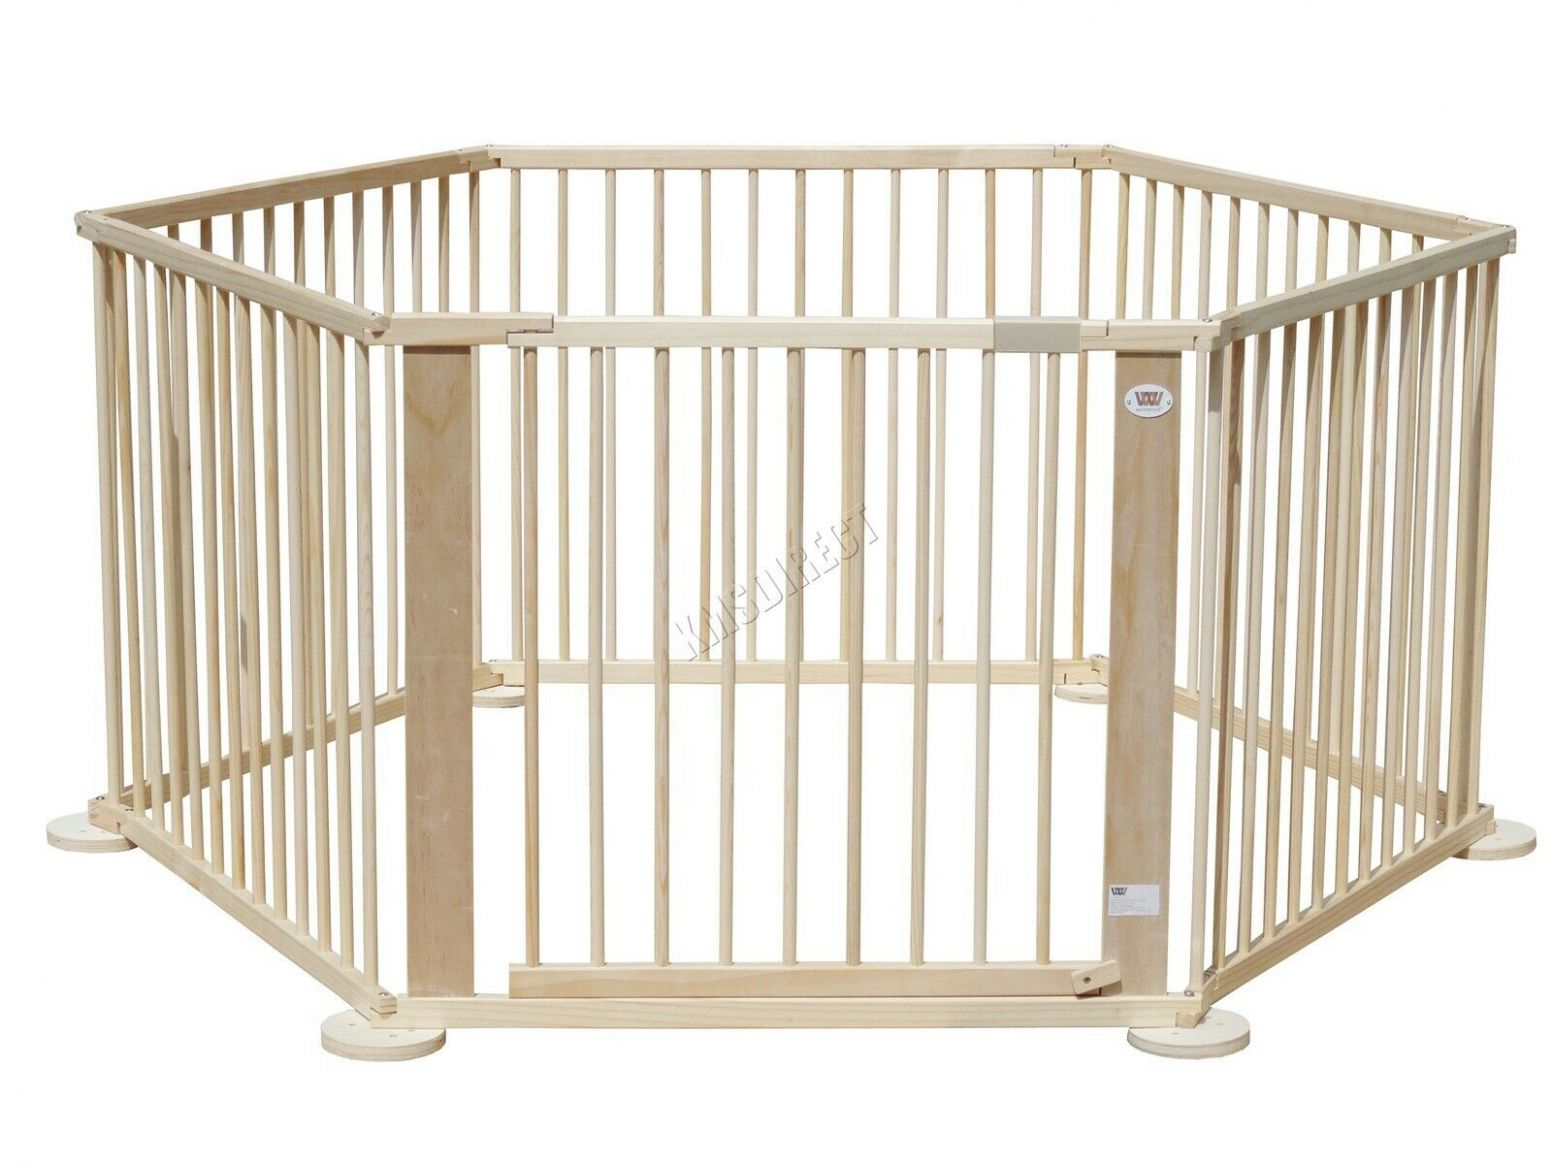 Baby Child Foldable Playpen Room Divider Pine Wood 11 Side Heavy Duty - baby room divider